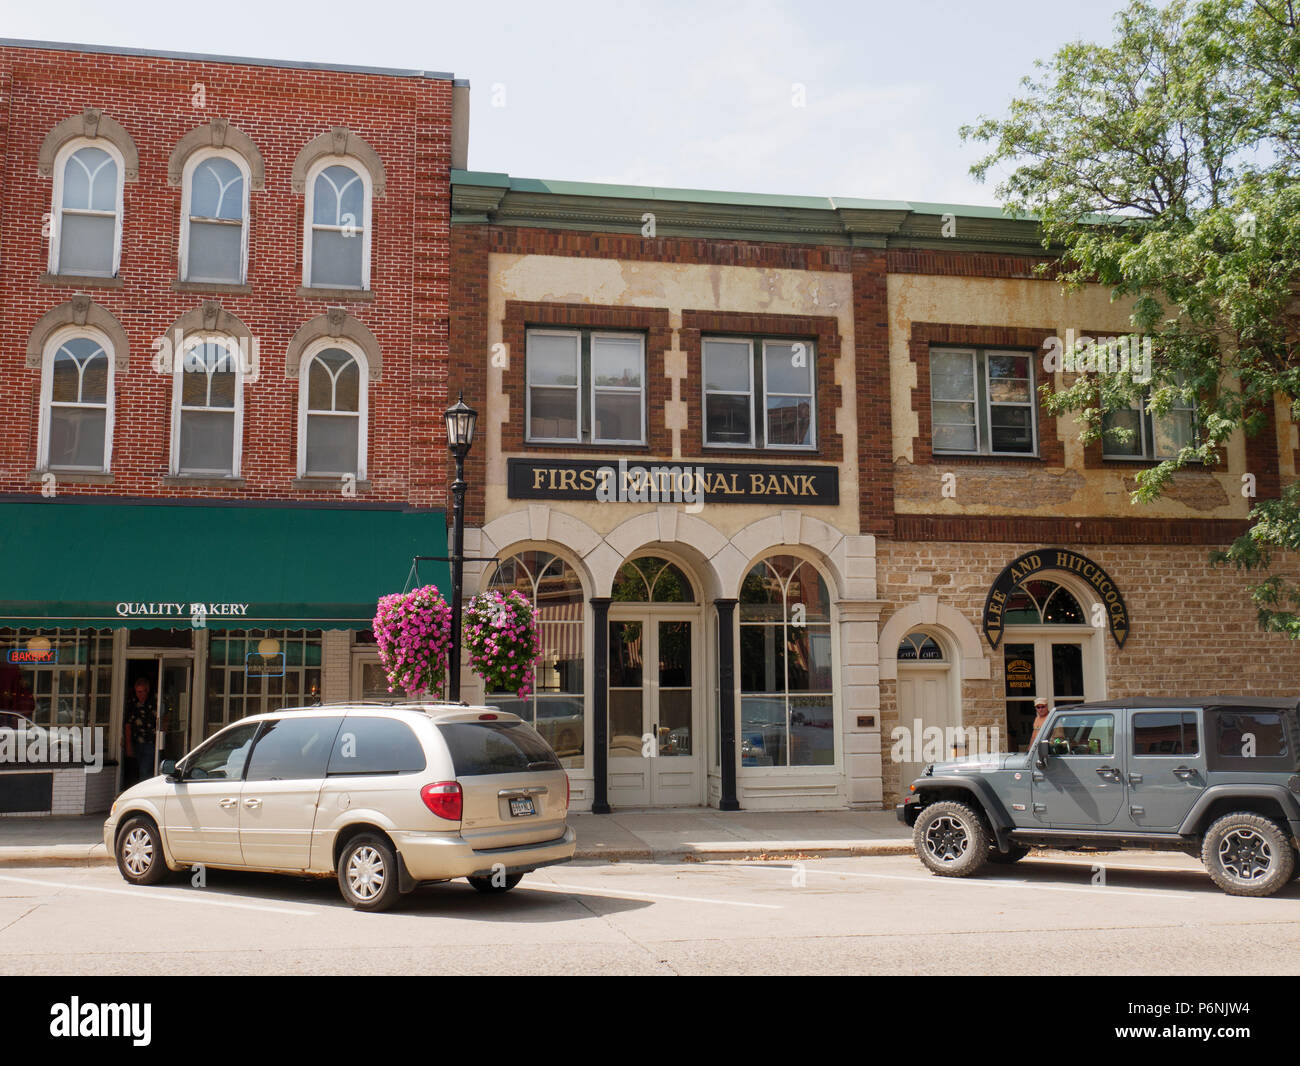 First National Bank, Northfield, Minnesota. Site of James/Younger gang's failed robbery attempt. - Stock Image